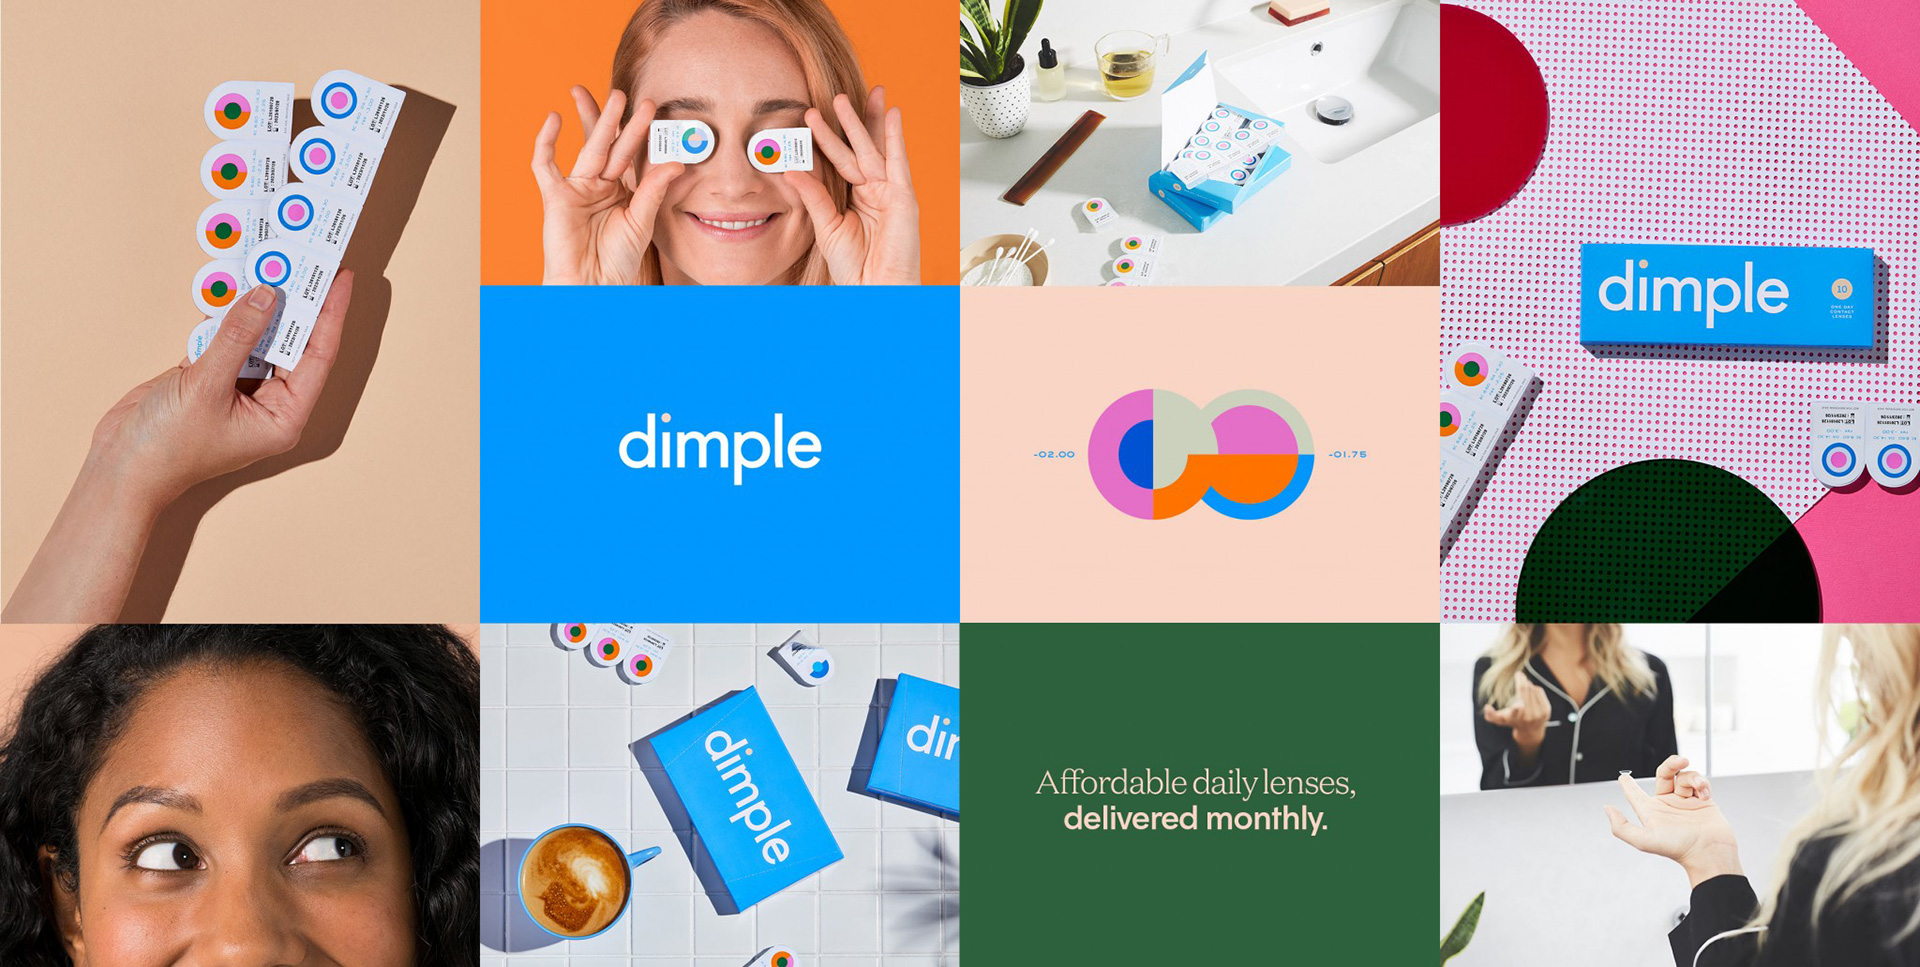 Dimple by Universal Favourite | Dezeen Awards 2019 | STIR